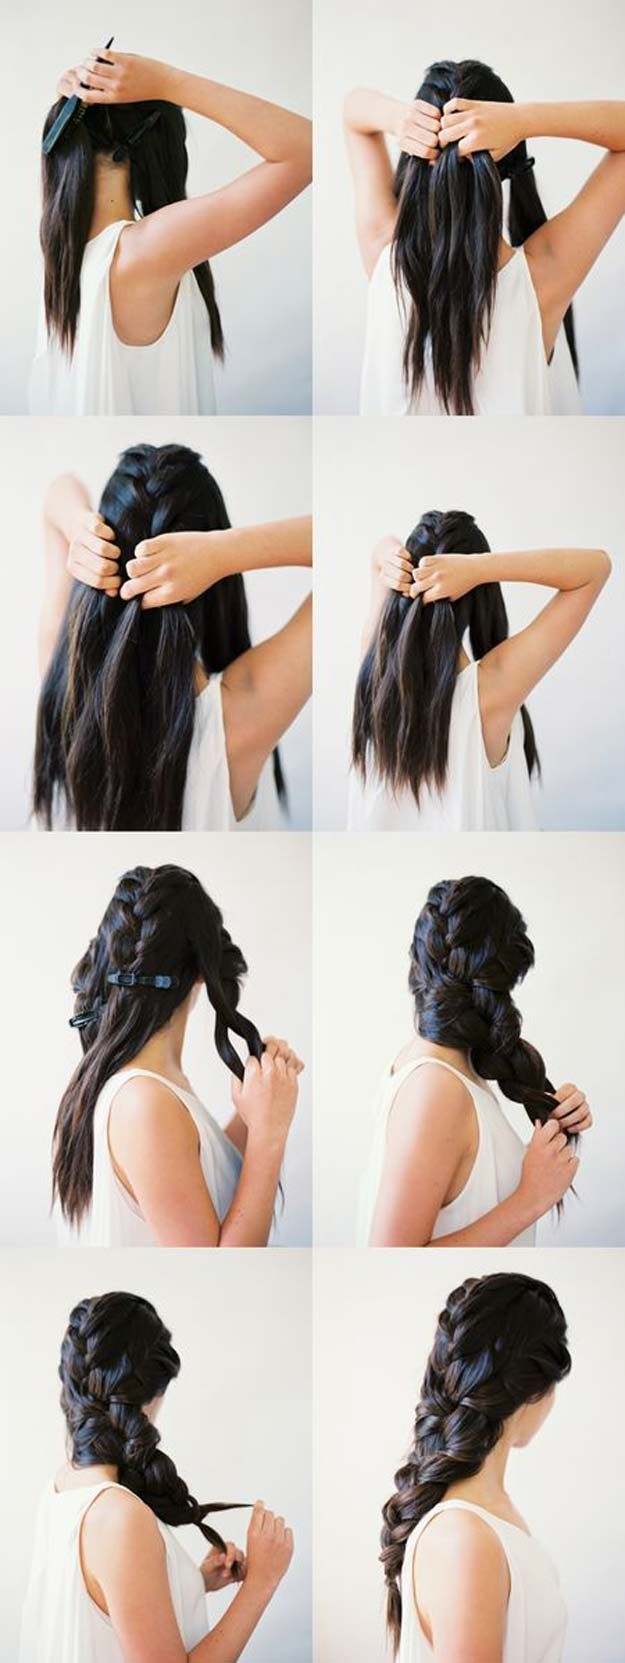 113 best Easy Hairstyles images on Pinterest | Hairstyle ideas, Hair ...